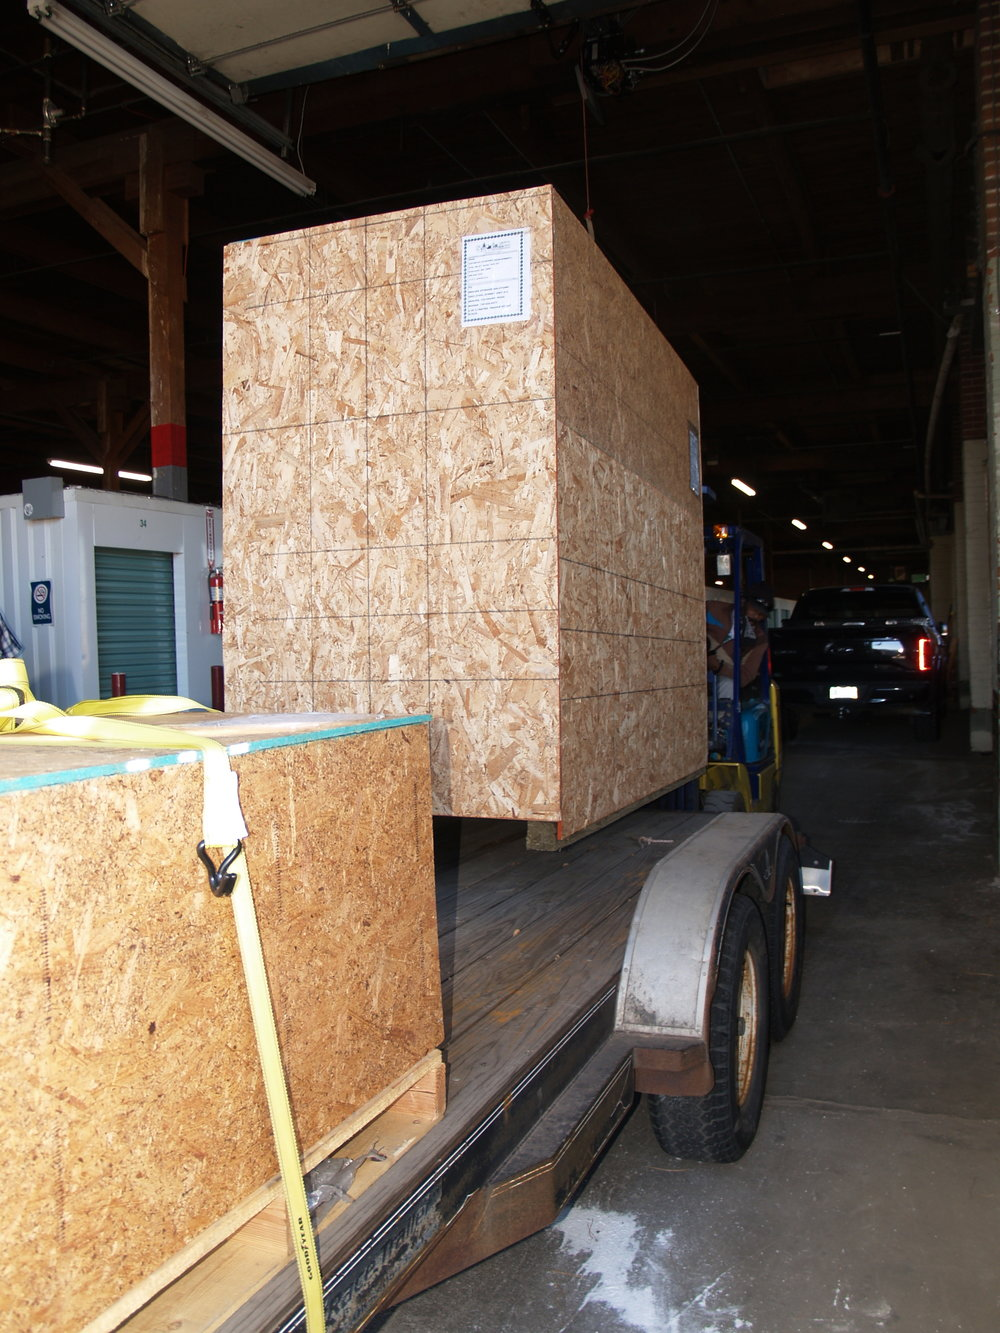 Loading the trailer at the warehouse...